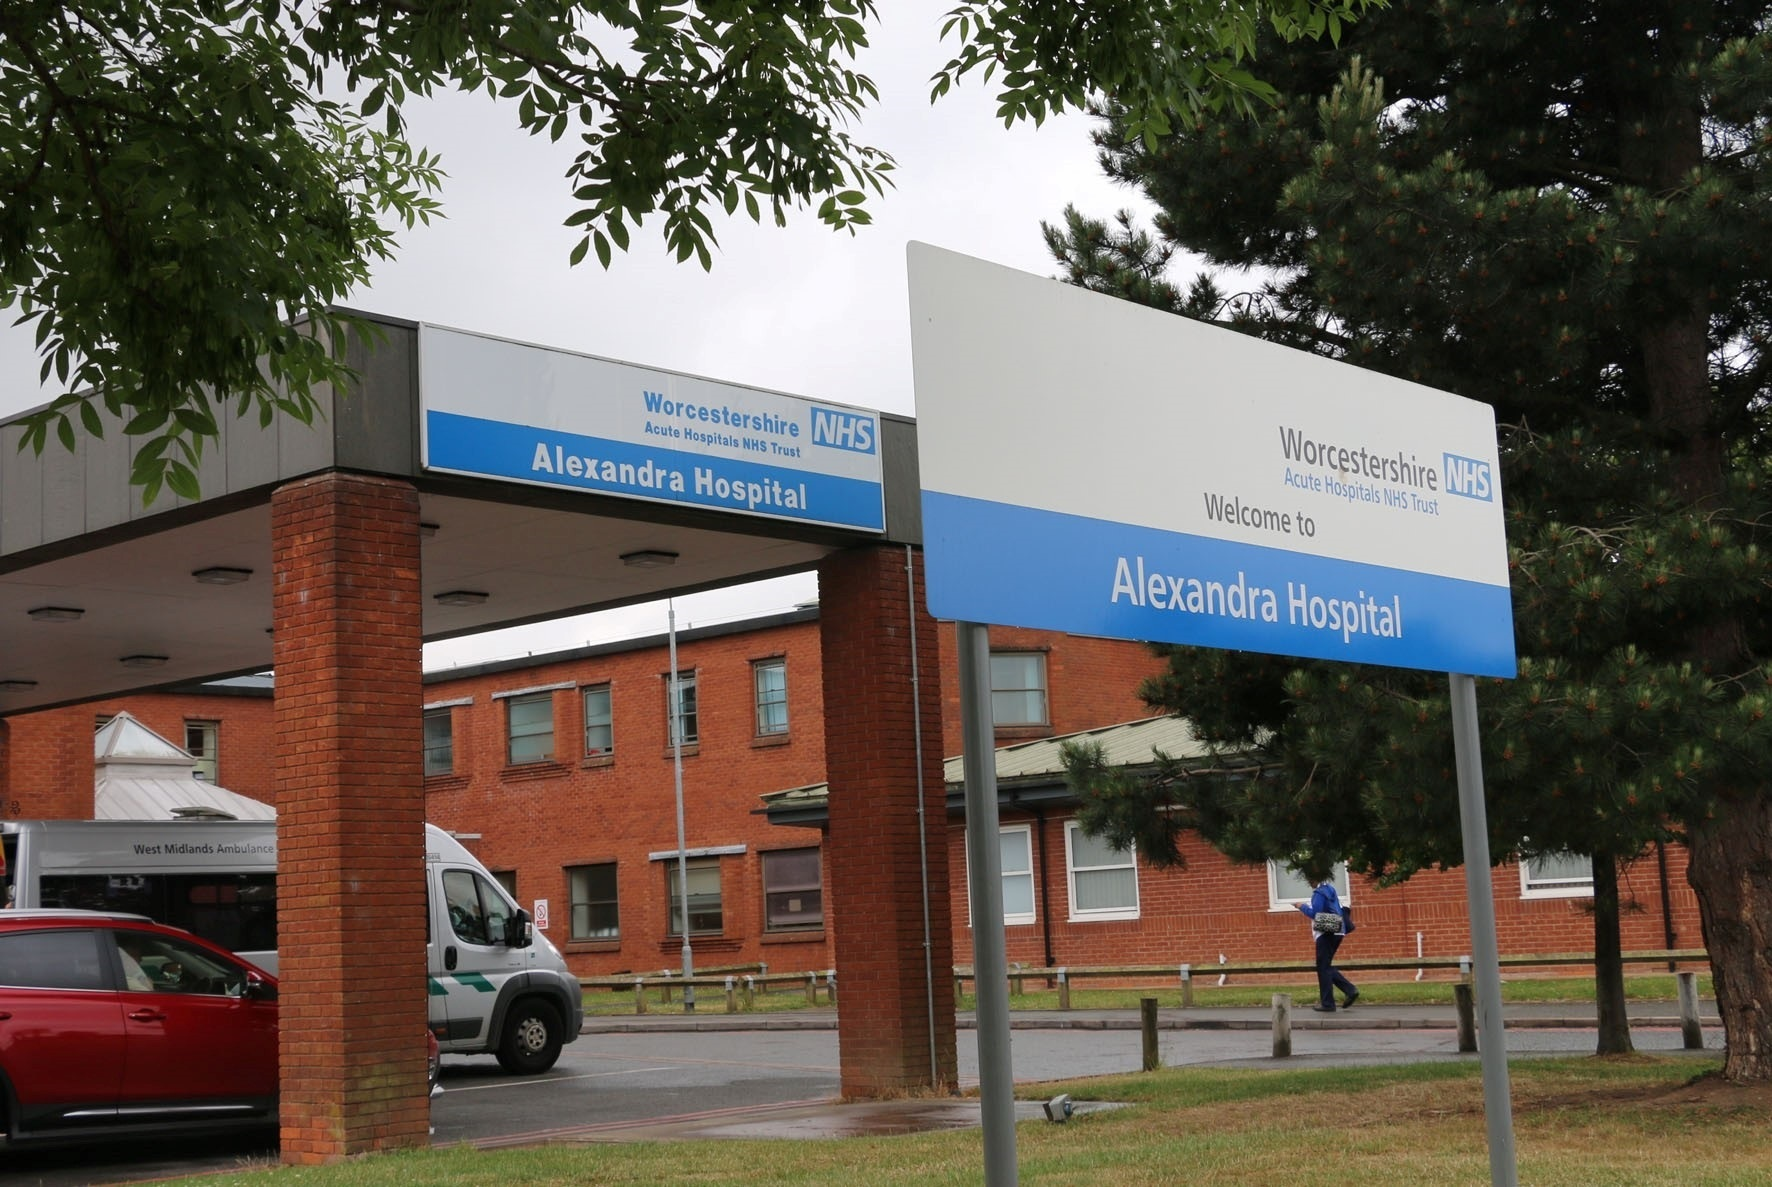 SAVINGS: The trust that runs Redditch's hospital admits savings need to be made after they were found to be over its deficit target by some £5.5 million